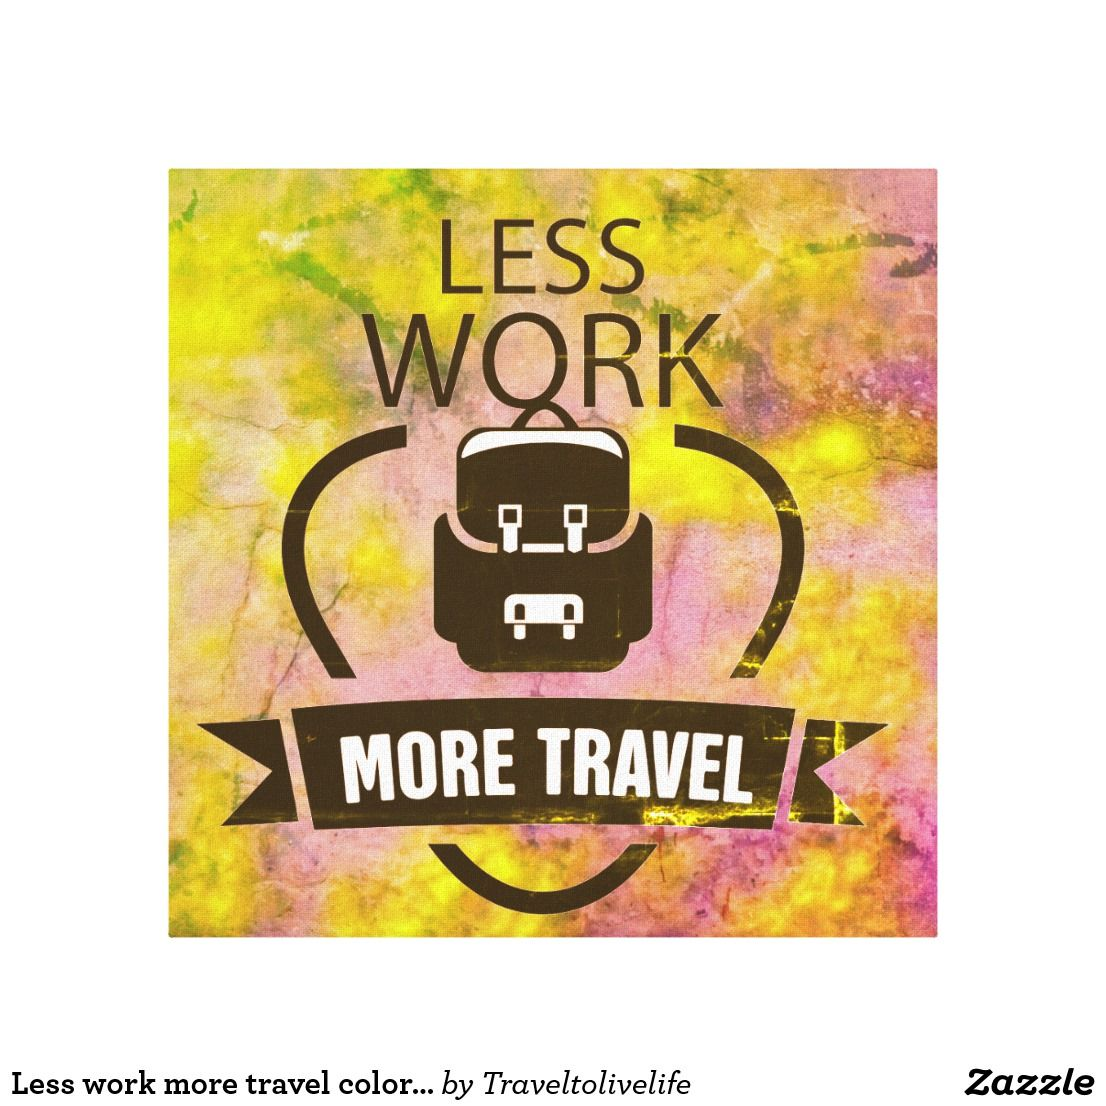 Less work more travel colorful textured wall art | Imagination and ...